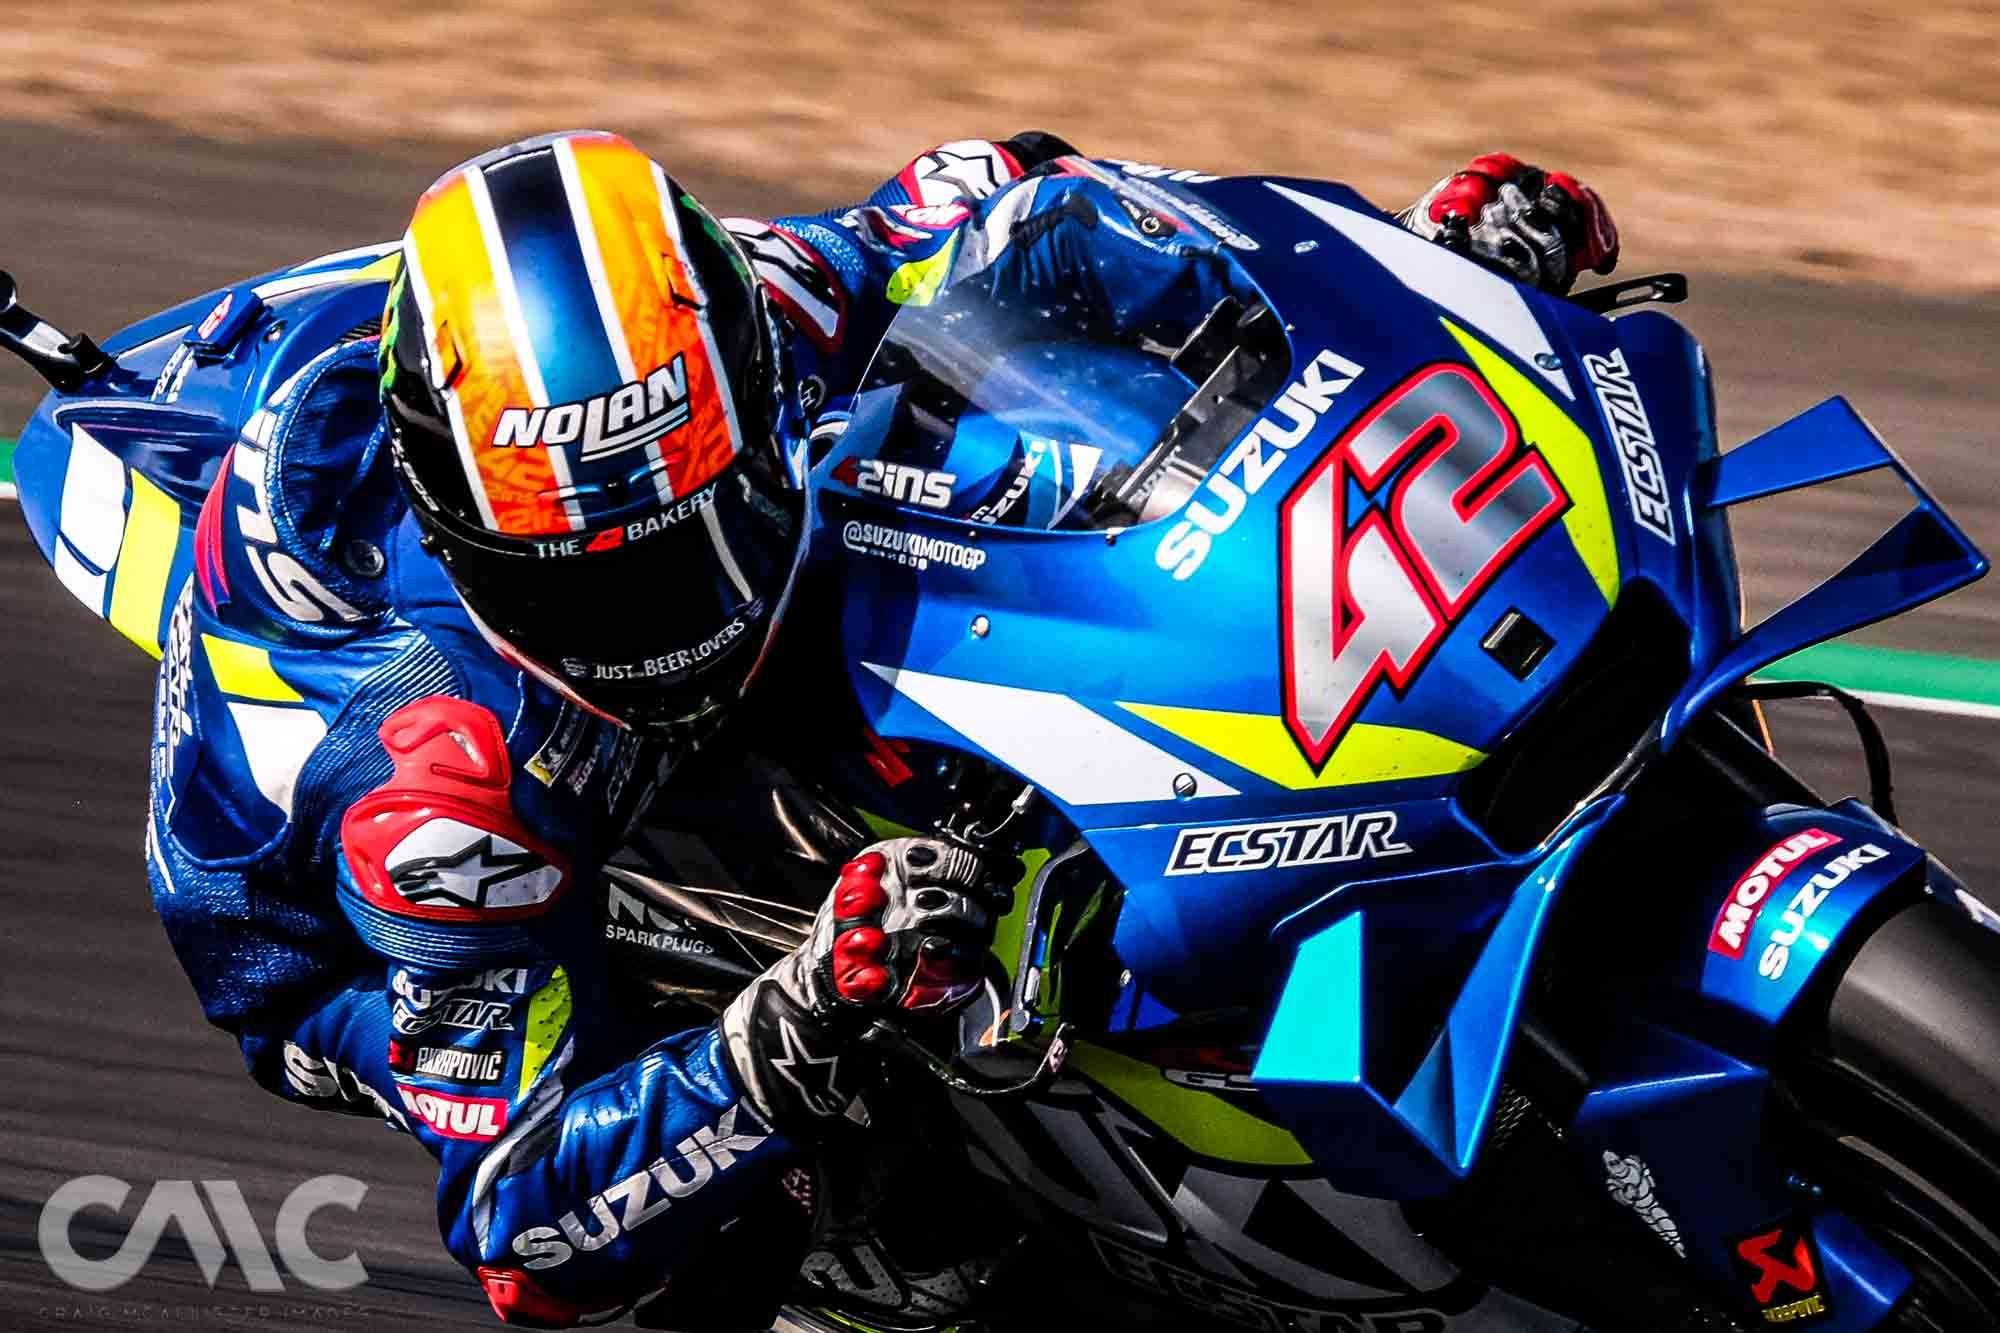 2019 BRITISH GP          WINNER - #42 Alex Rins on the Ecstar Team Suzuki Moto GP